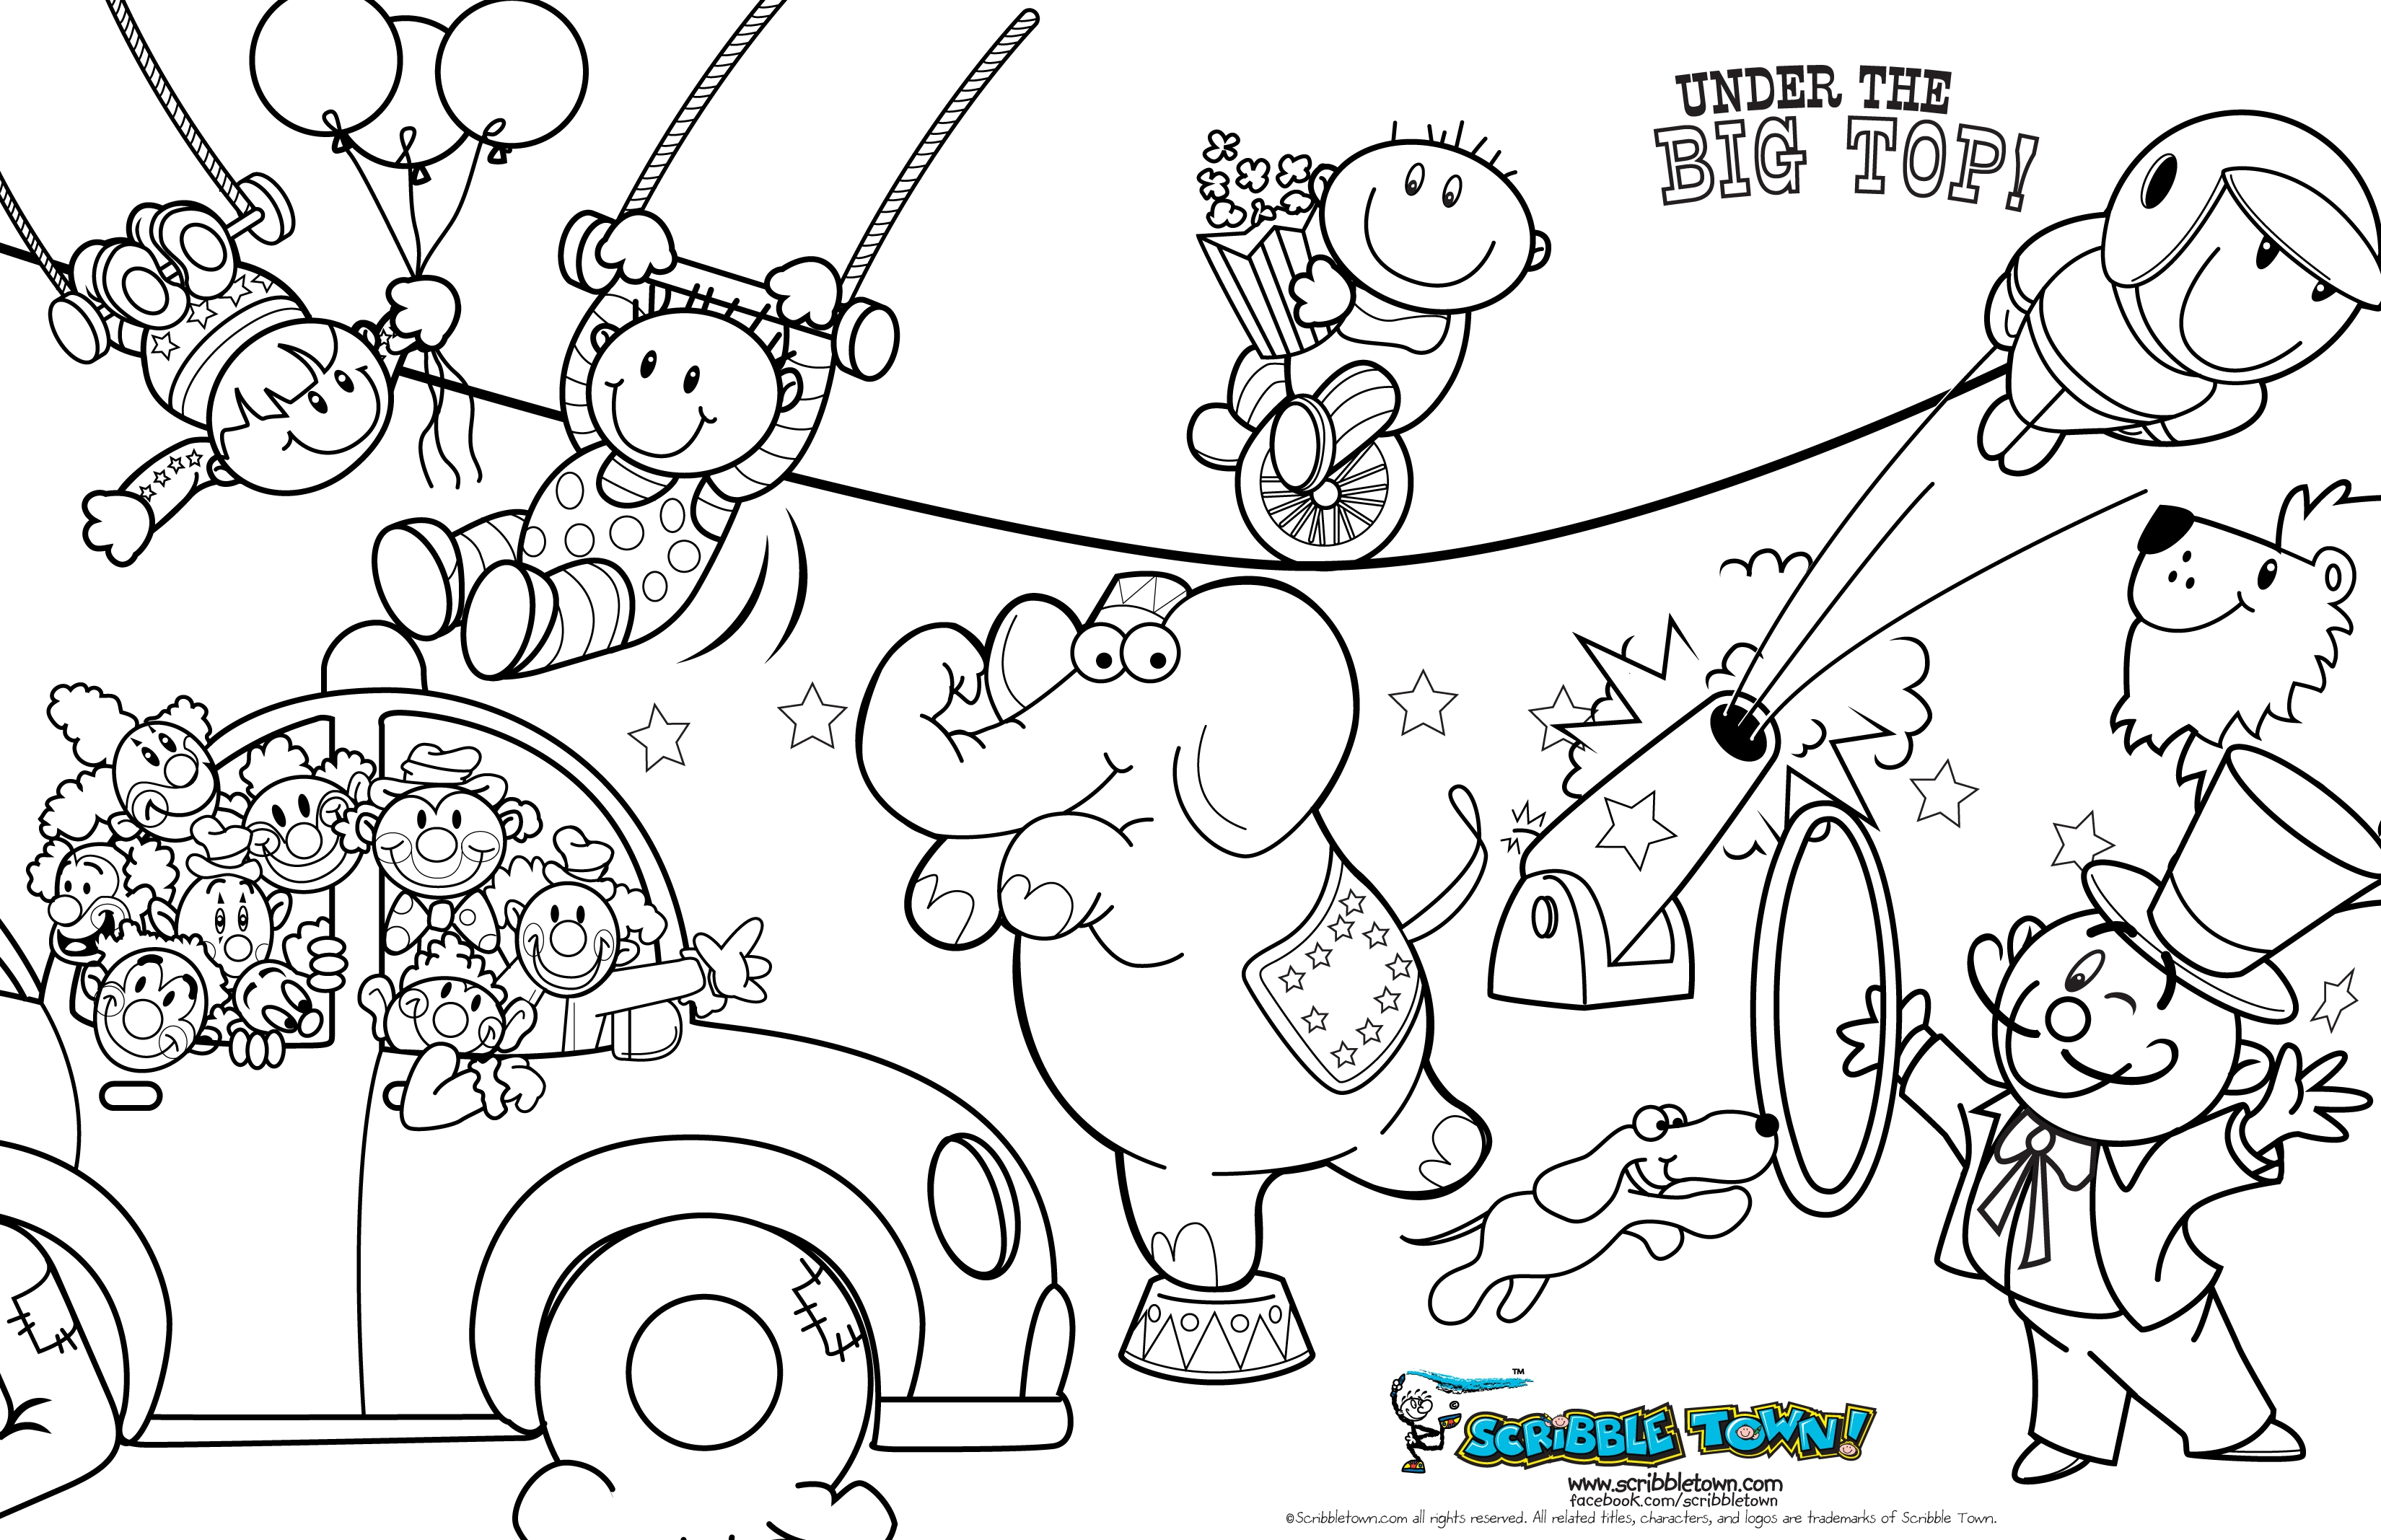 Circus Tent Coloring Page With Pages Printable Carnival 1 ... | 2135x3300